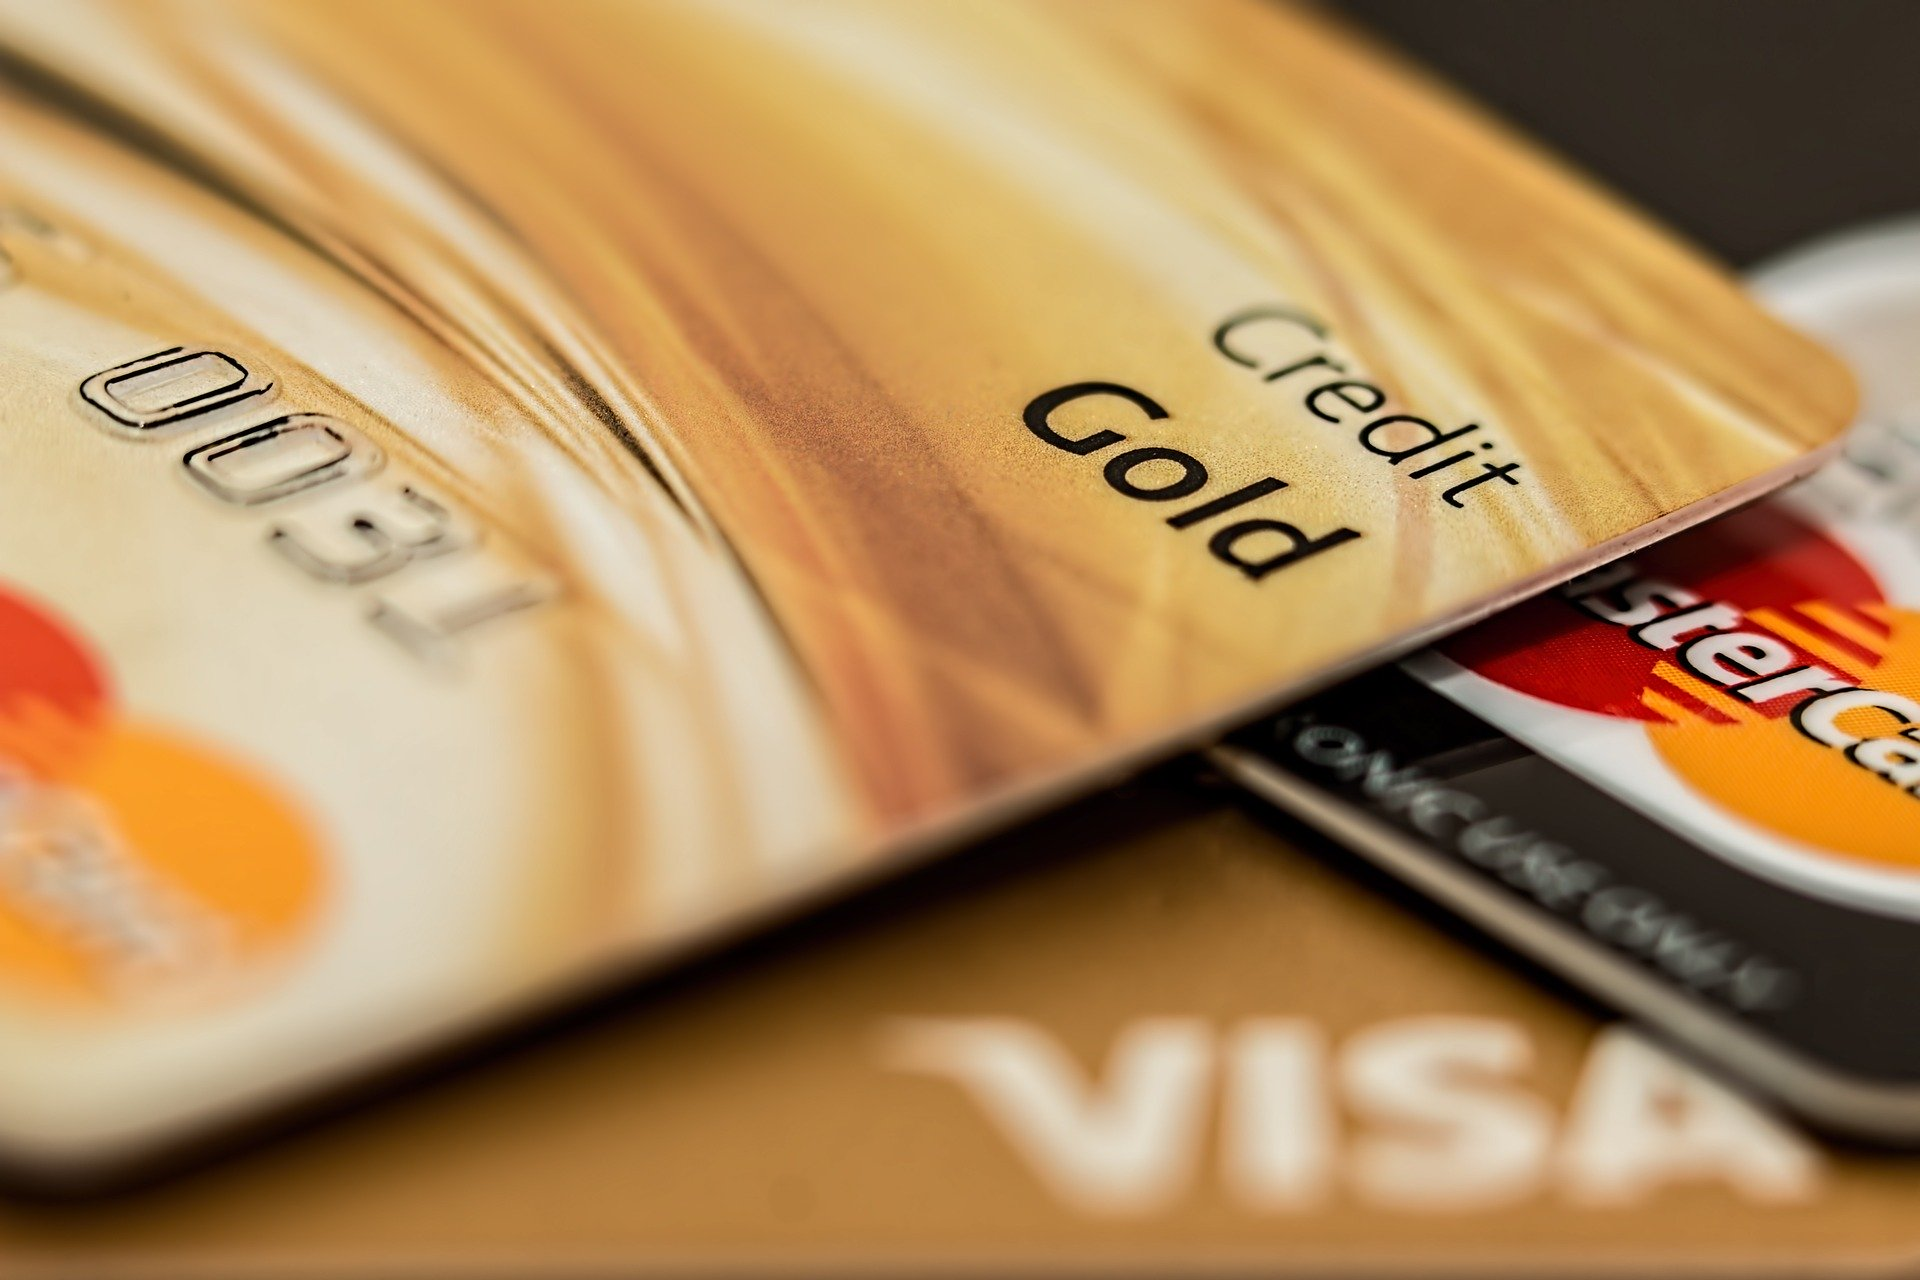 best-capital-one-credit-cards-to-raise-credit-score